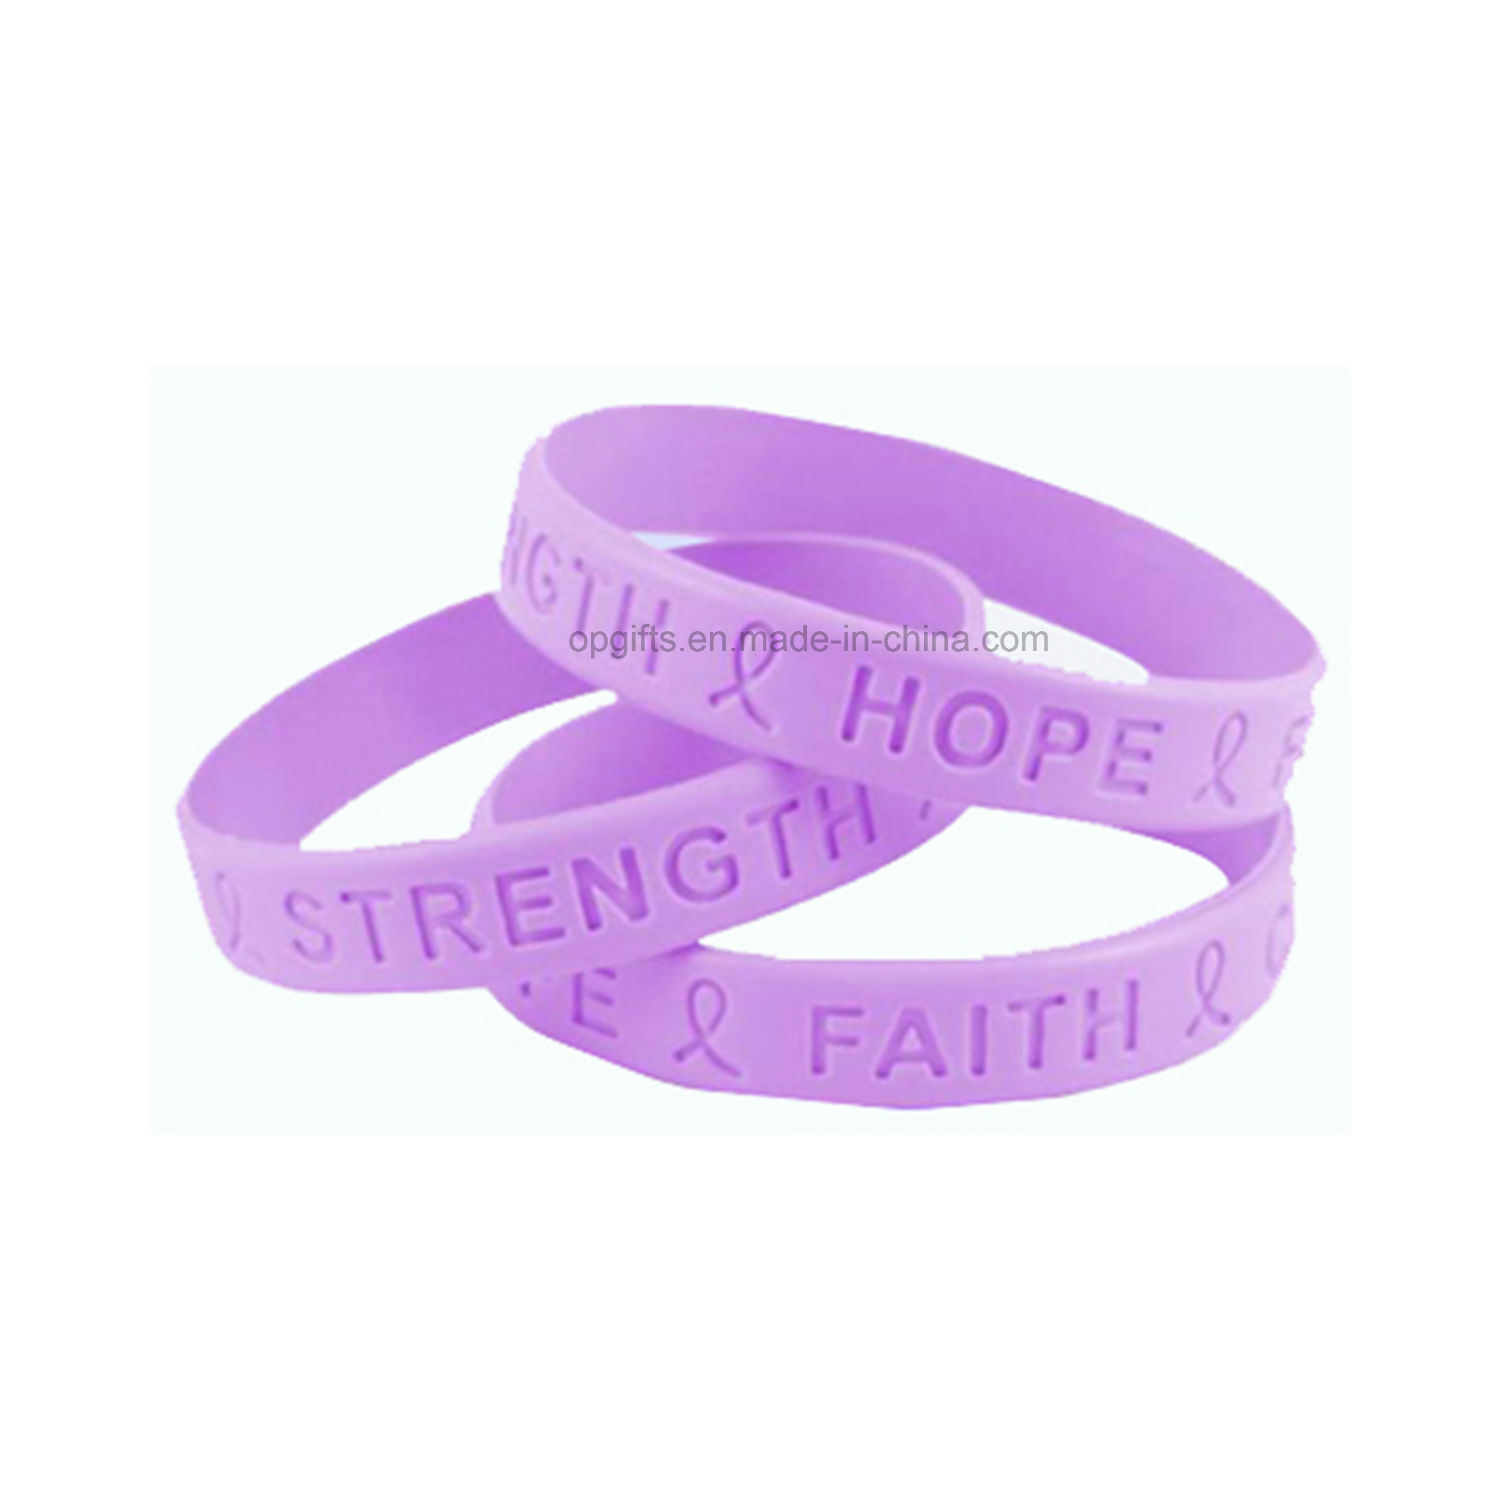 Promotional Gifts Custom Printed Silicone Wristband/Bracelet